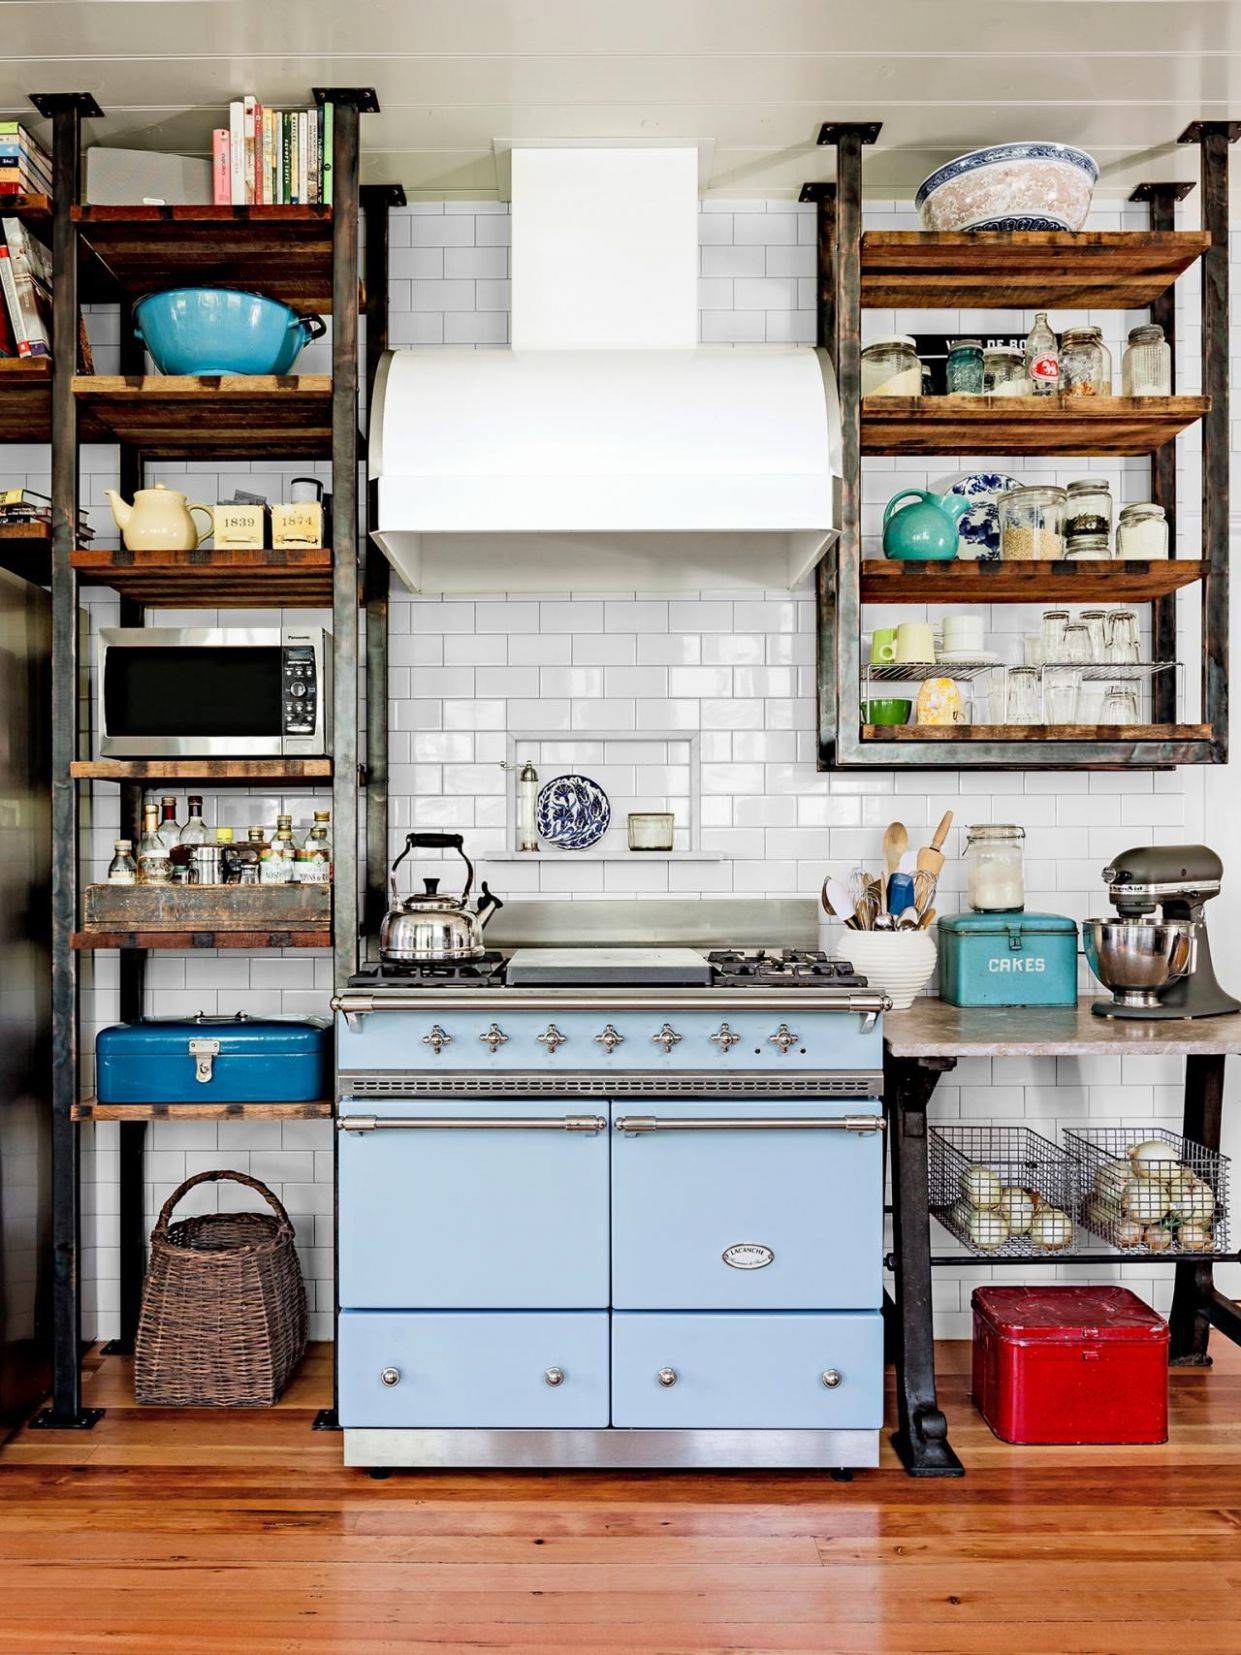 Quirky Kitchen Design Ideas to Steal From HGTV Magazine | Kitchen ..